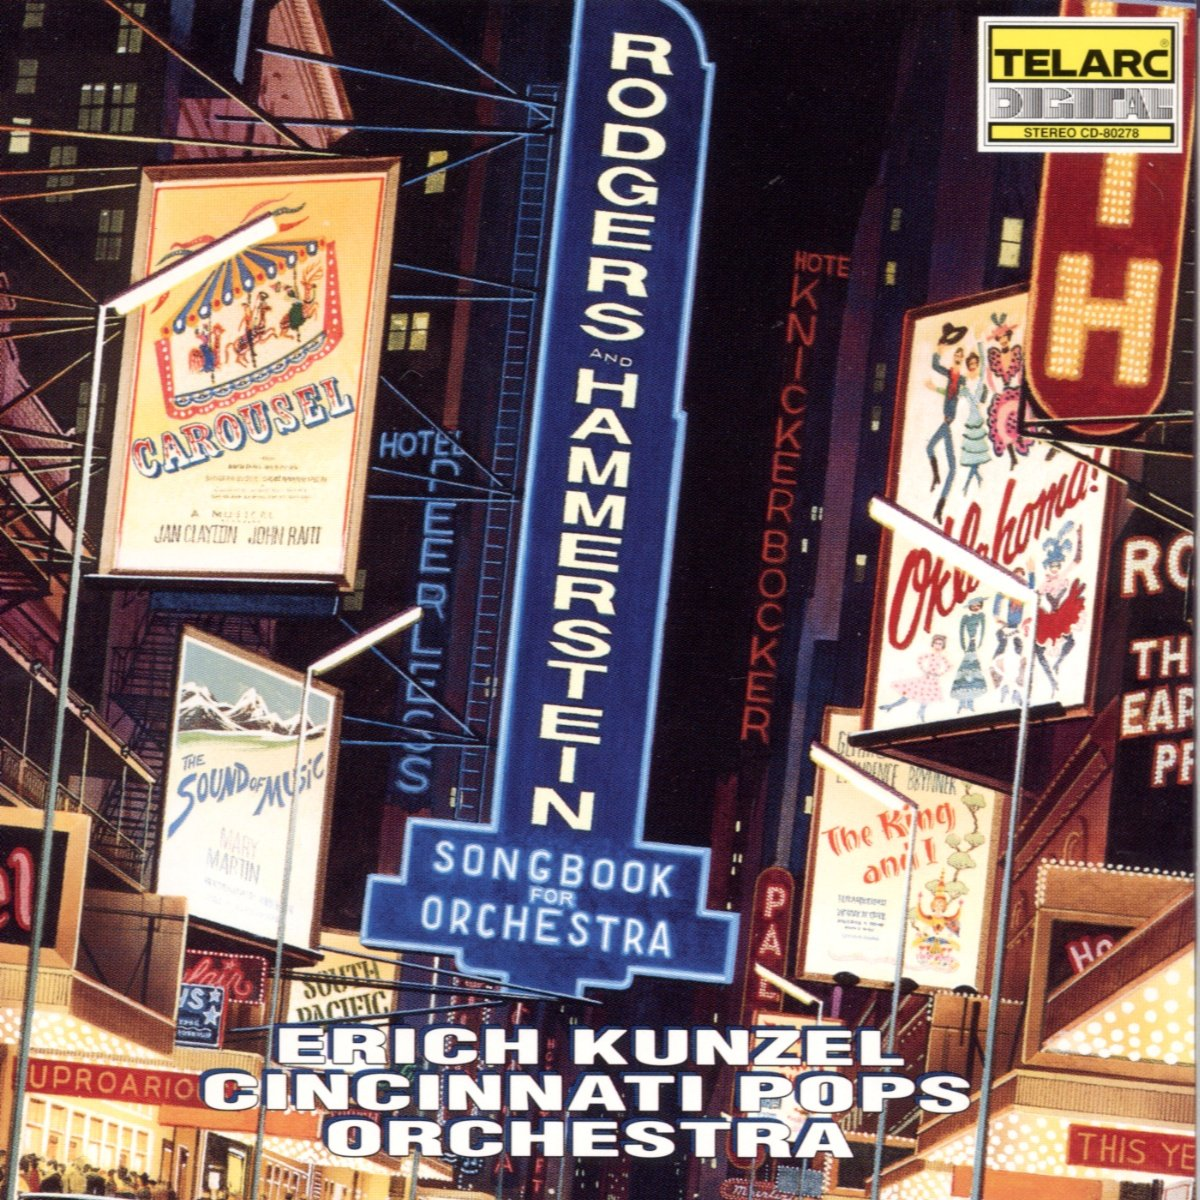 Rodgers & Hammerstein: Songbook for Orchestra by Telarc